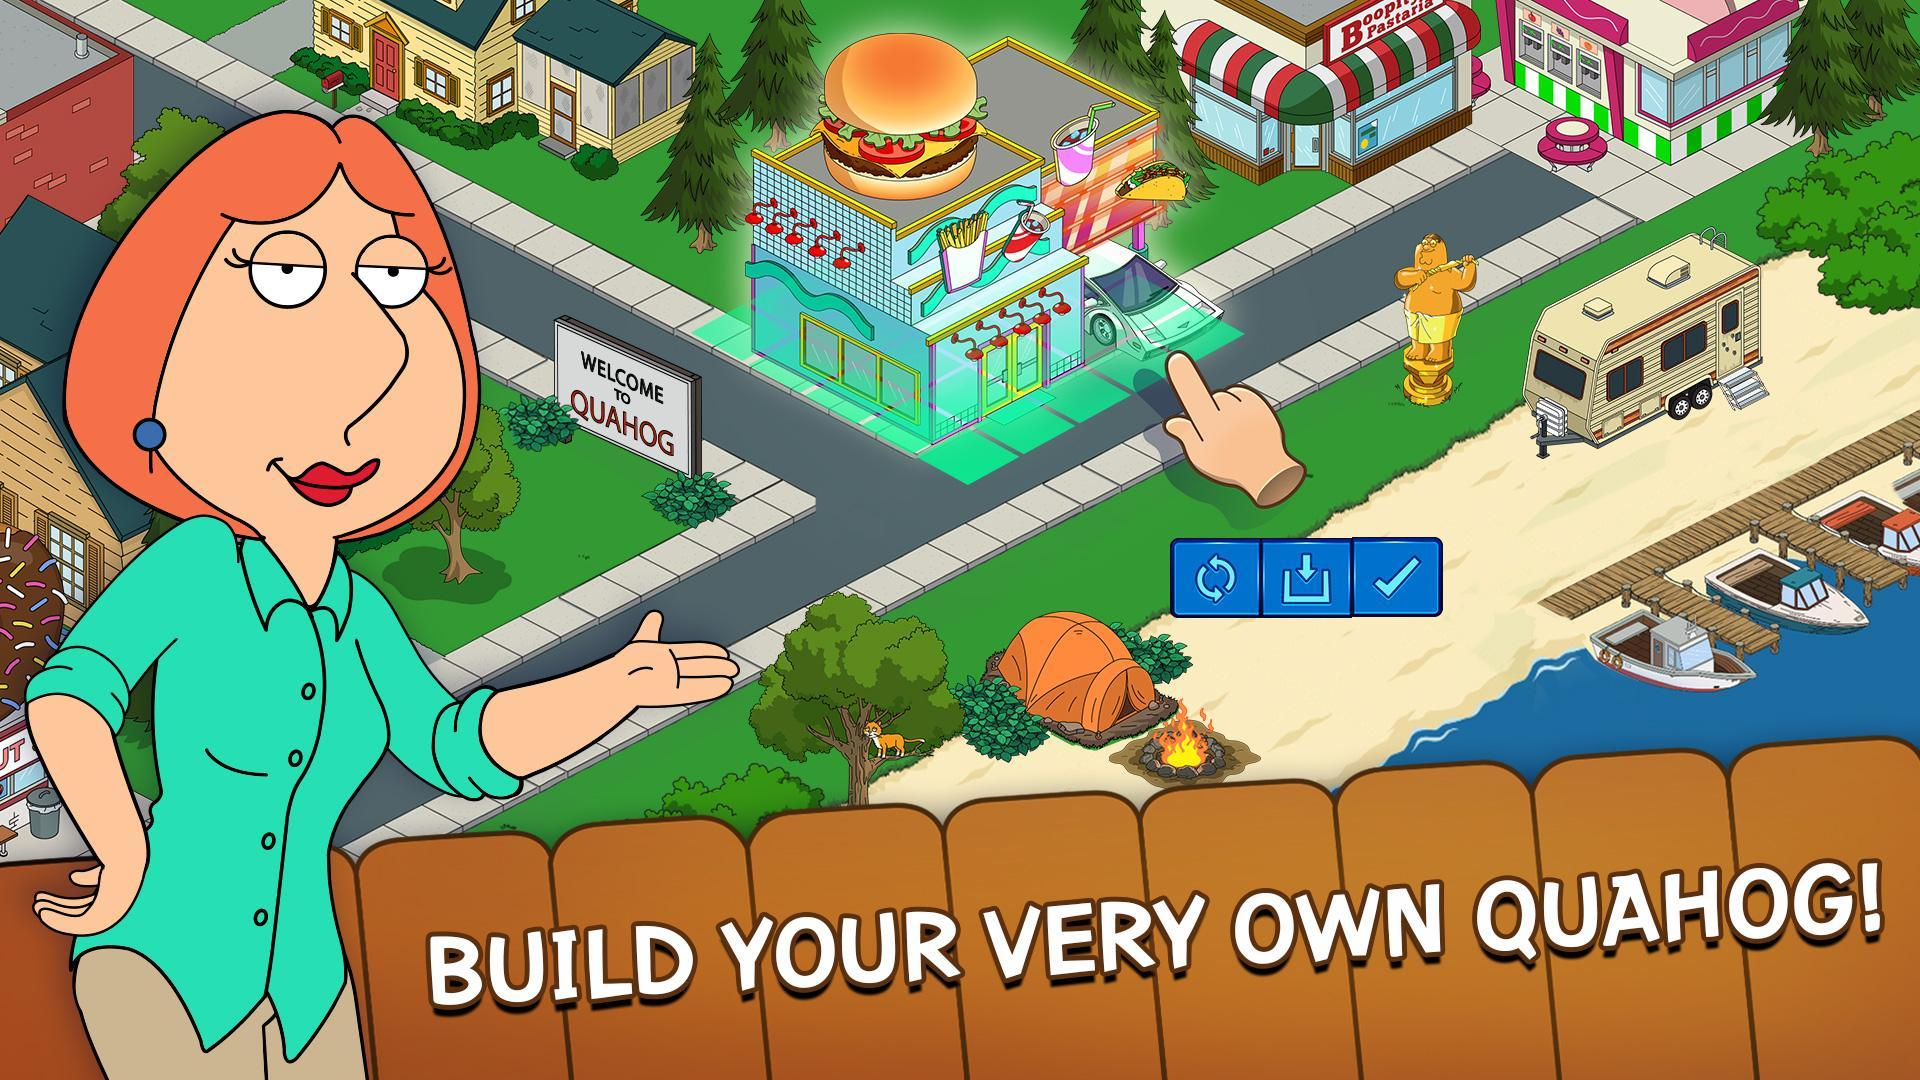 Family Guy The Quest for Stuff 3.8.1 Screenshot 8